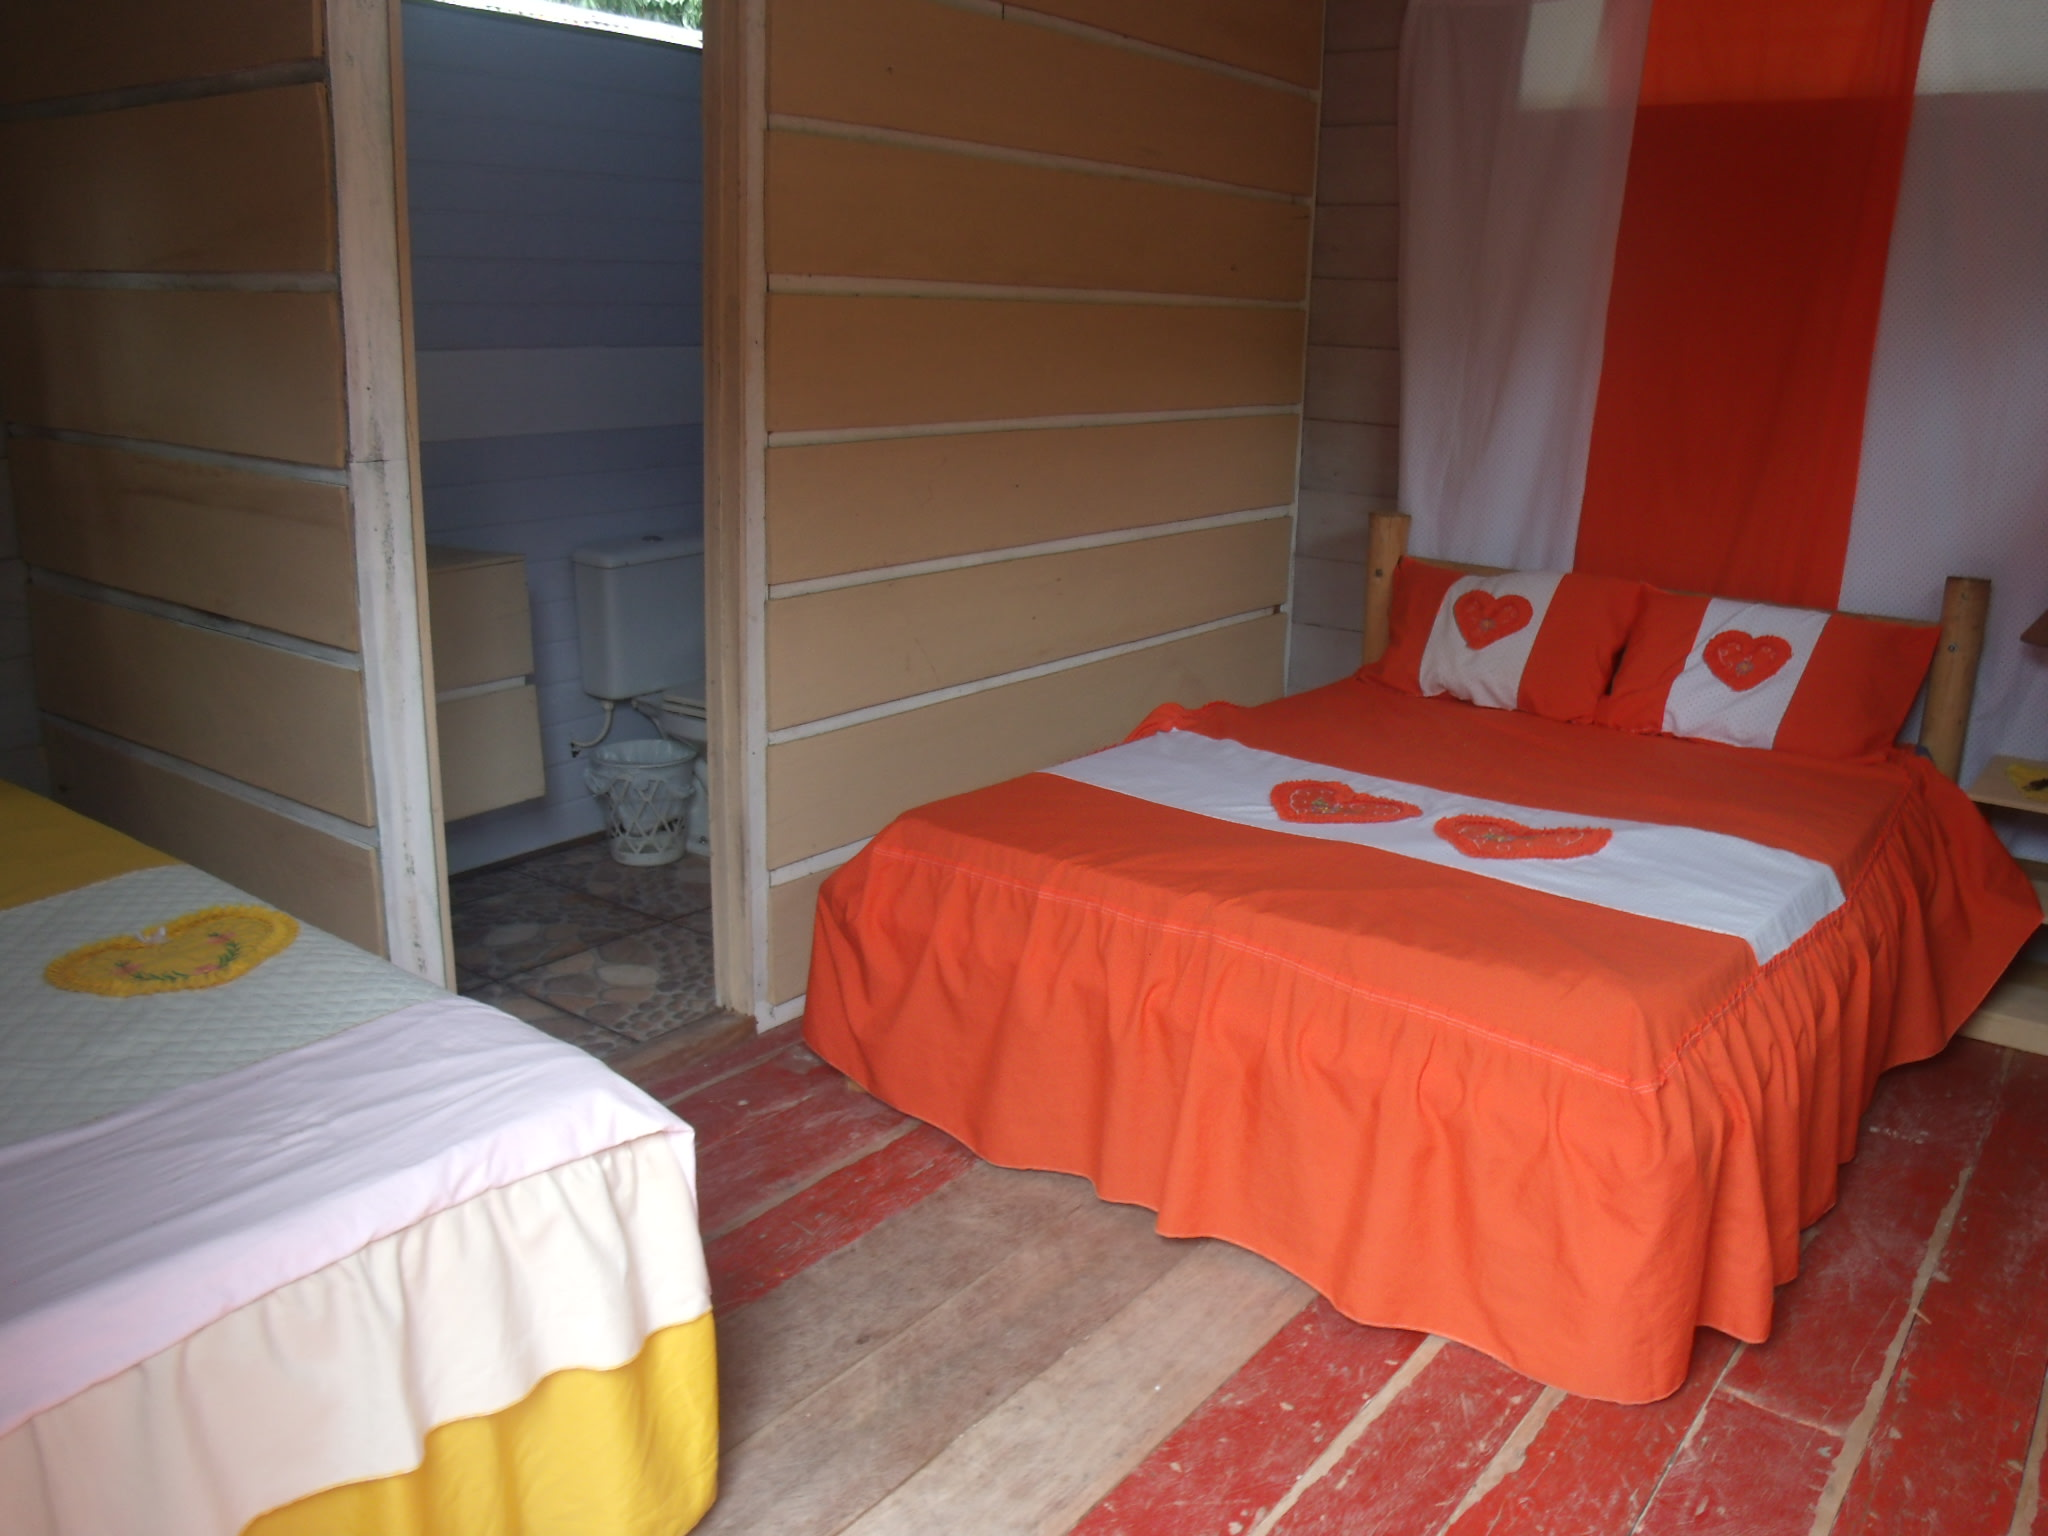 Comfortable accommodation at Camp Cottage Lodge at Camp Cottage Lodge